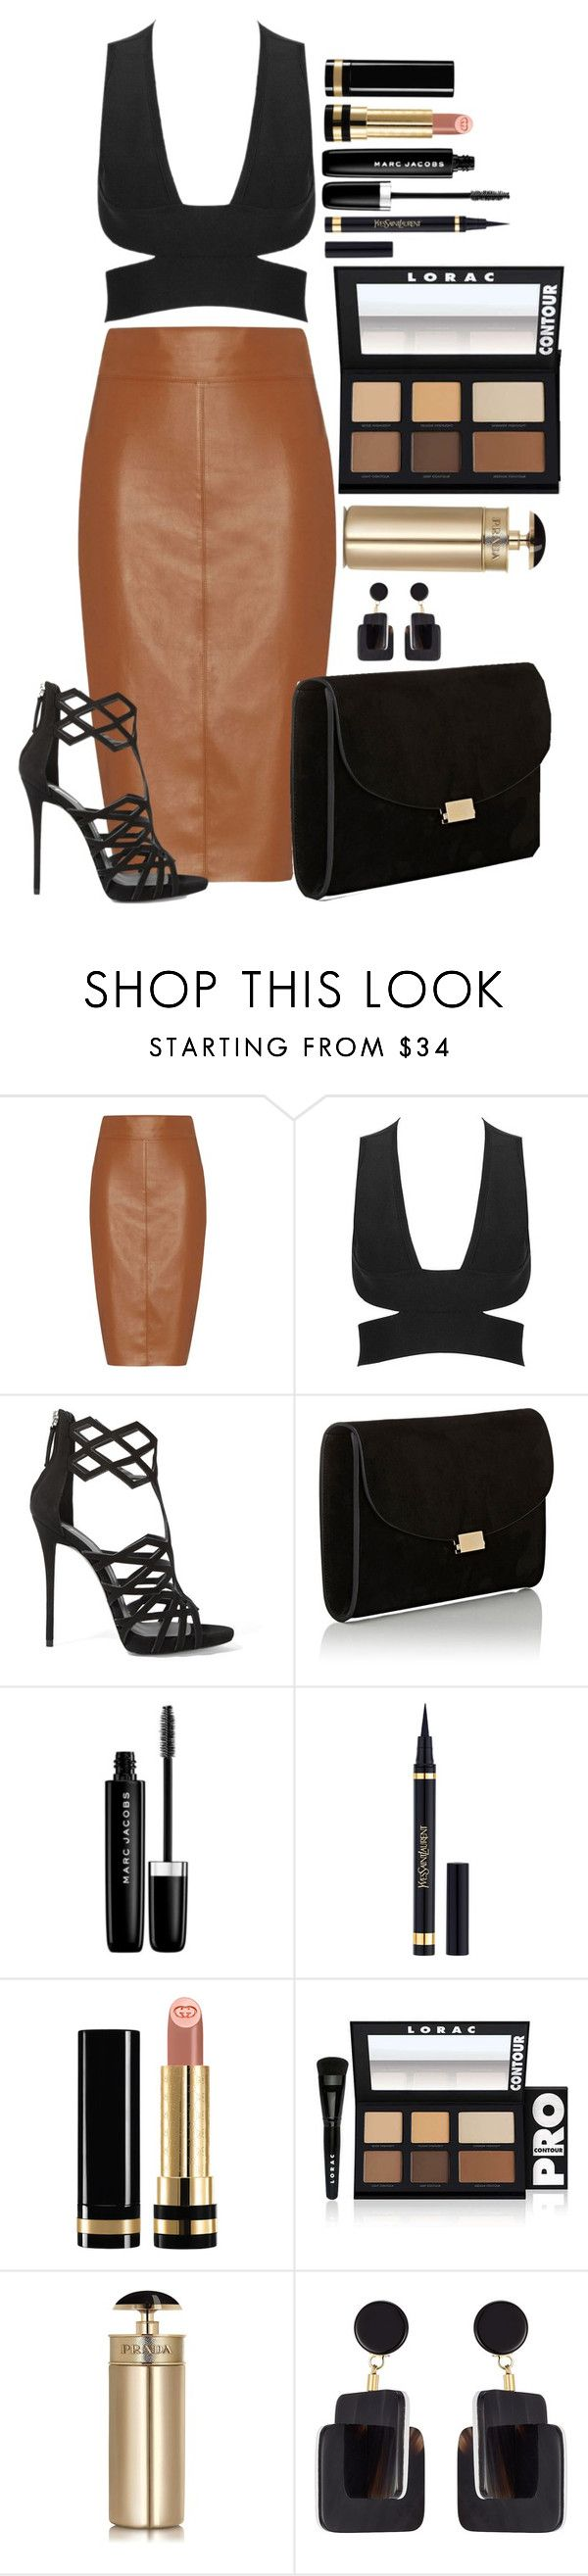 """Untitled #1447"" by fabianarveloc on Polyvore featuring Bailey 44, Giuseppe Zanotti, Mansur Gavriel, Marc Jacobs, Yves Saint Laurent, Gucci, LORAC, Prada and Marni"